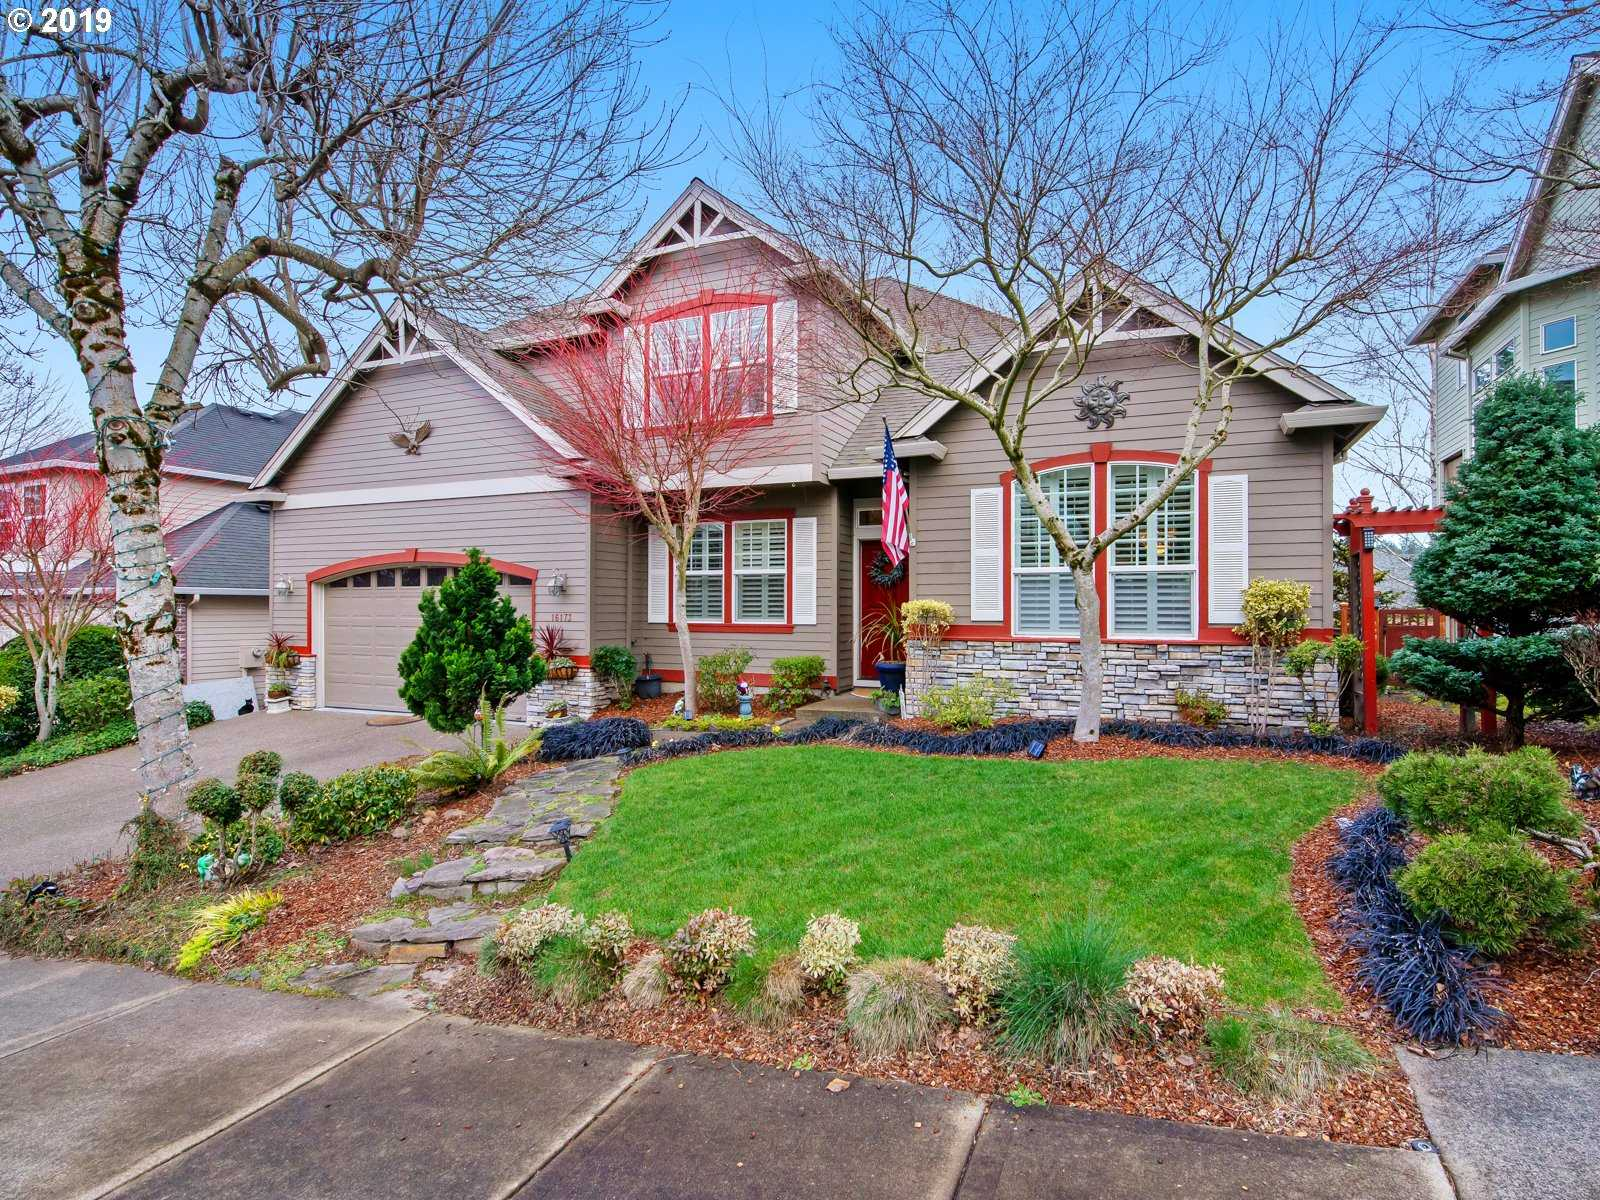 $550,000 - 4Br/4Ba -  for Sale in Meyers Farm, Tigard